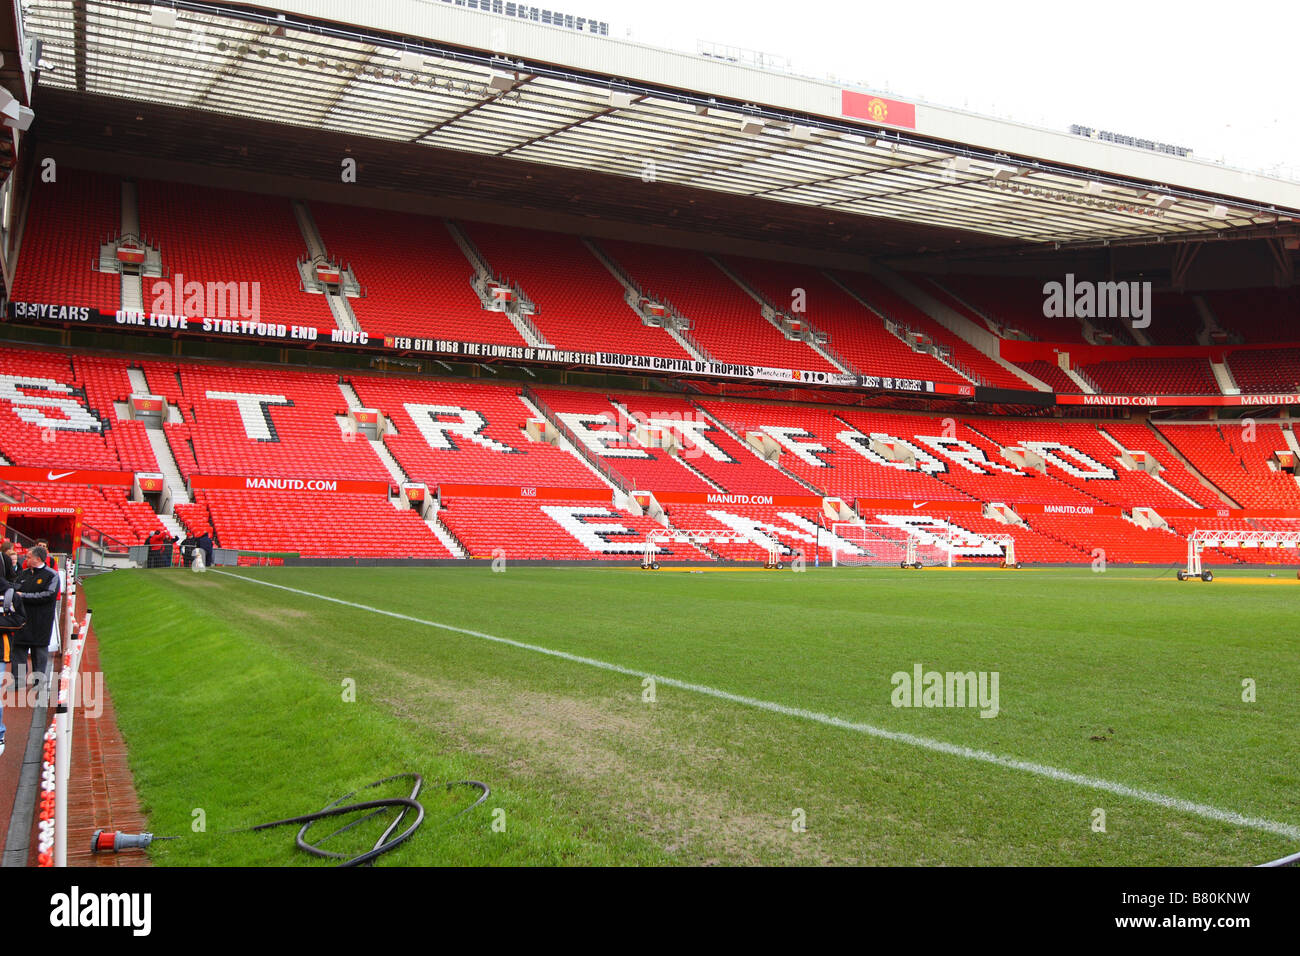 Manchester United Football Ground, Old Trafford - Stock Image